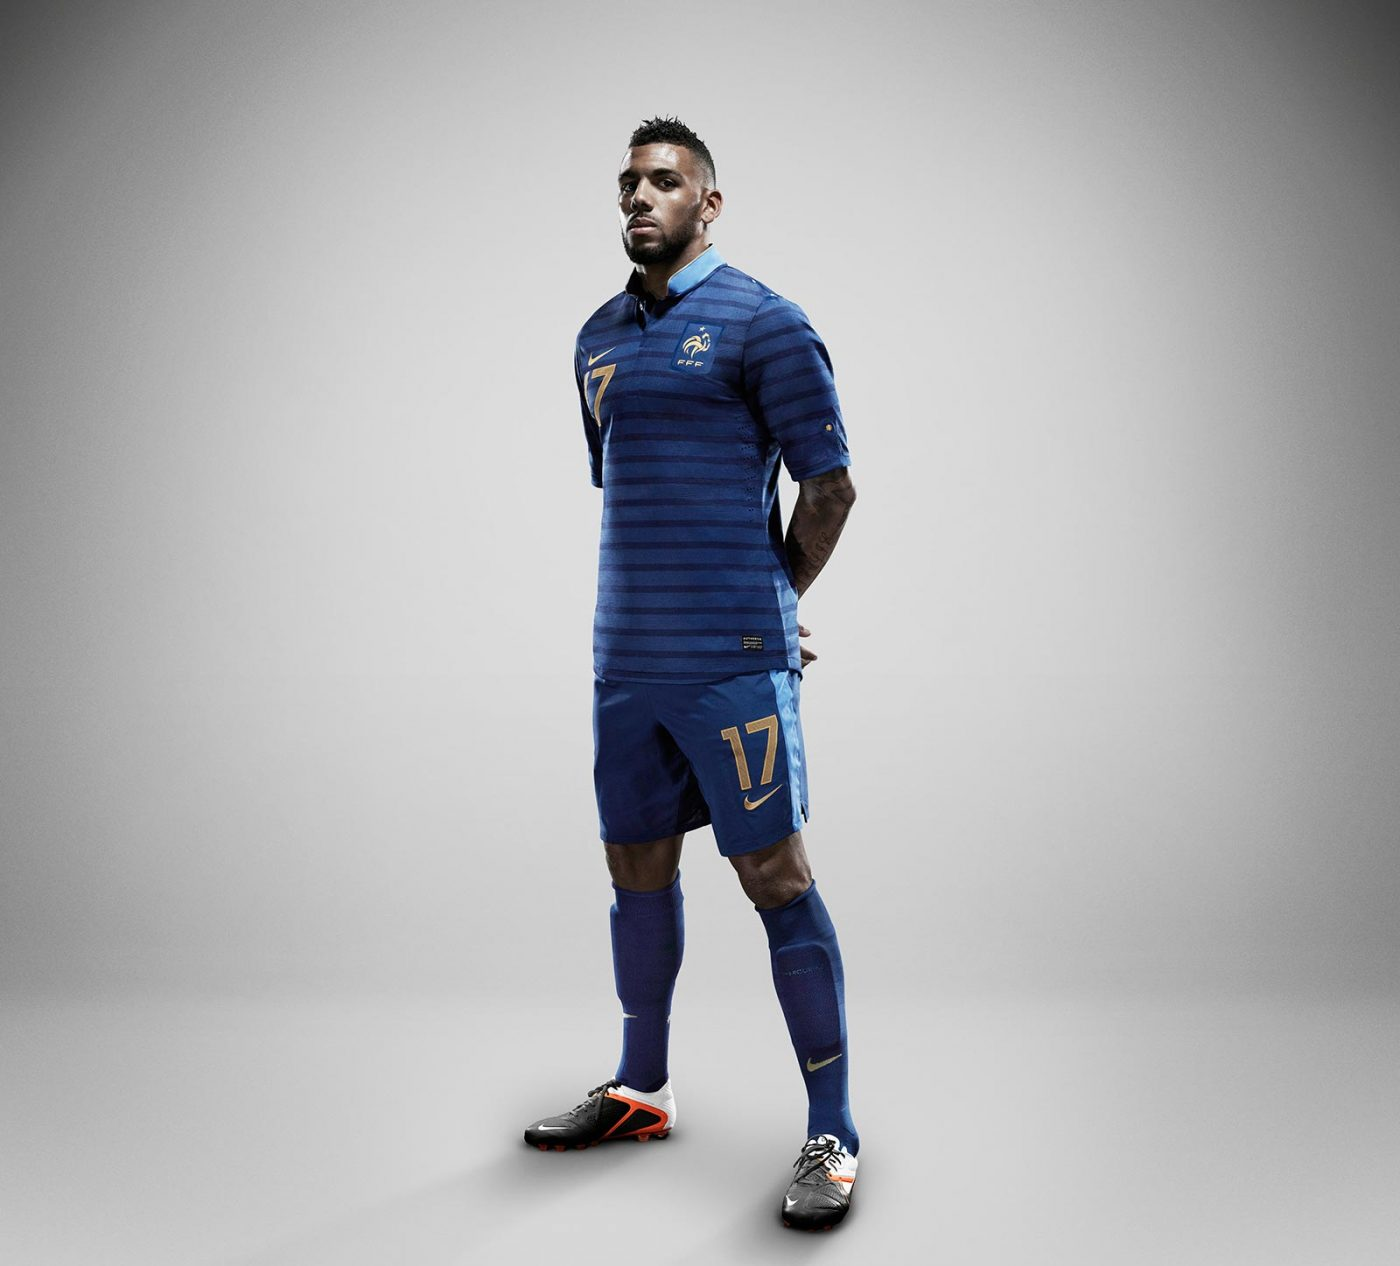 maillot-equipe-de-france-euro-2012-nike-footpack